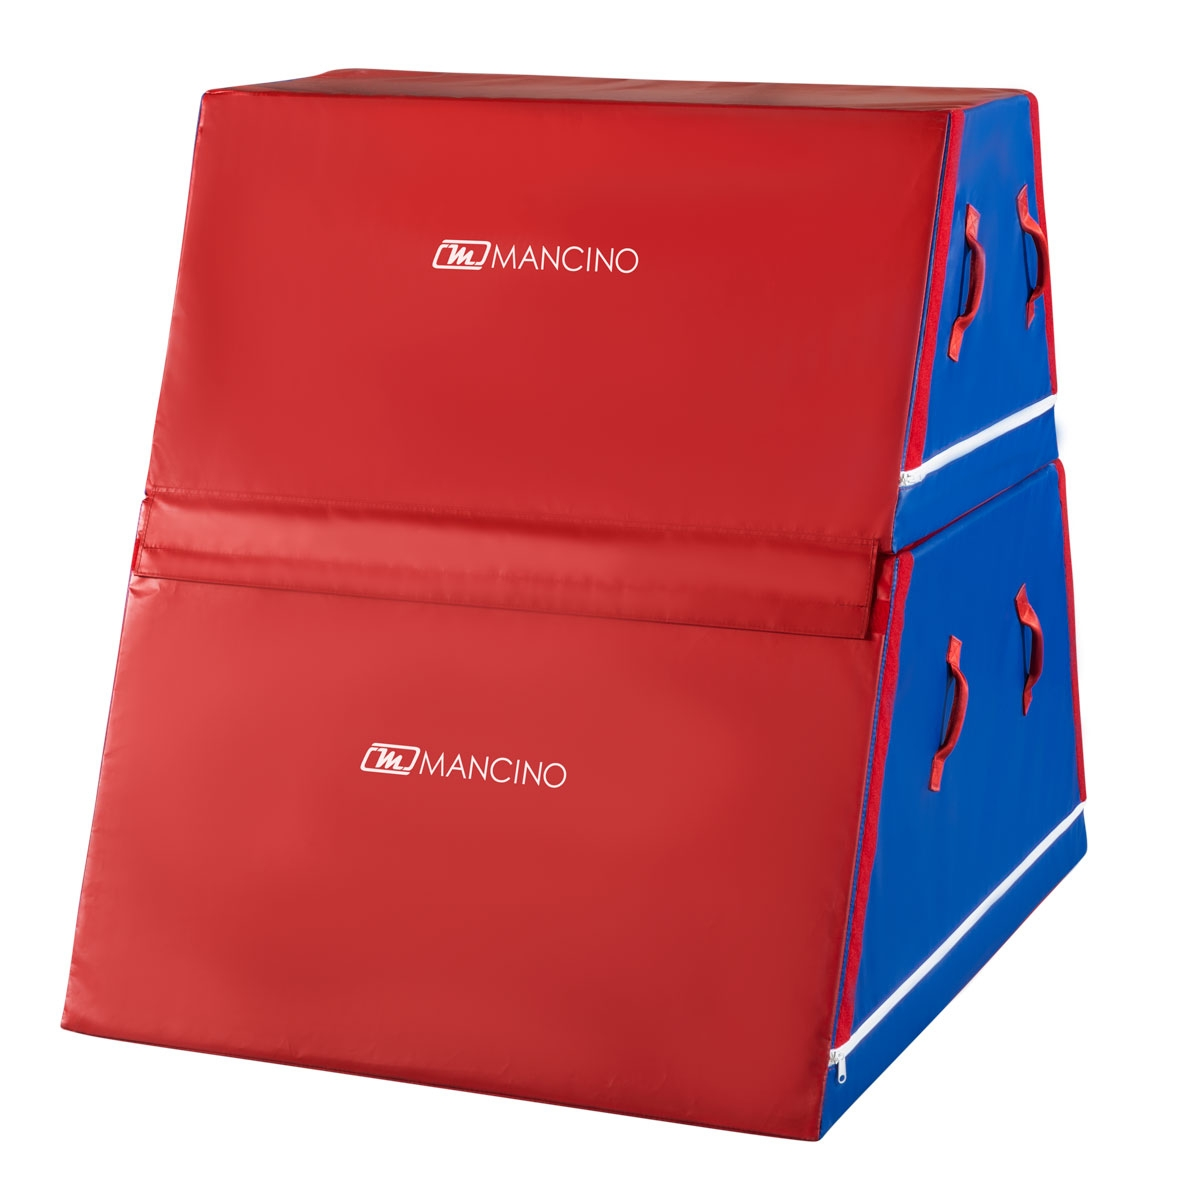 trapezoid trainer red and blue   mancino mats